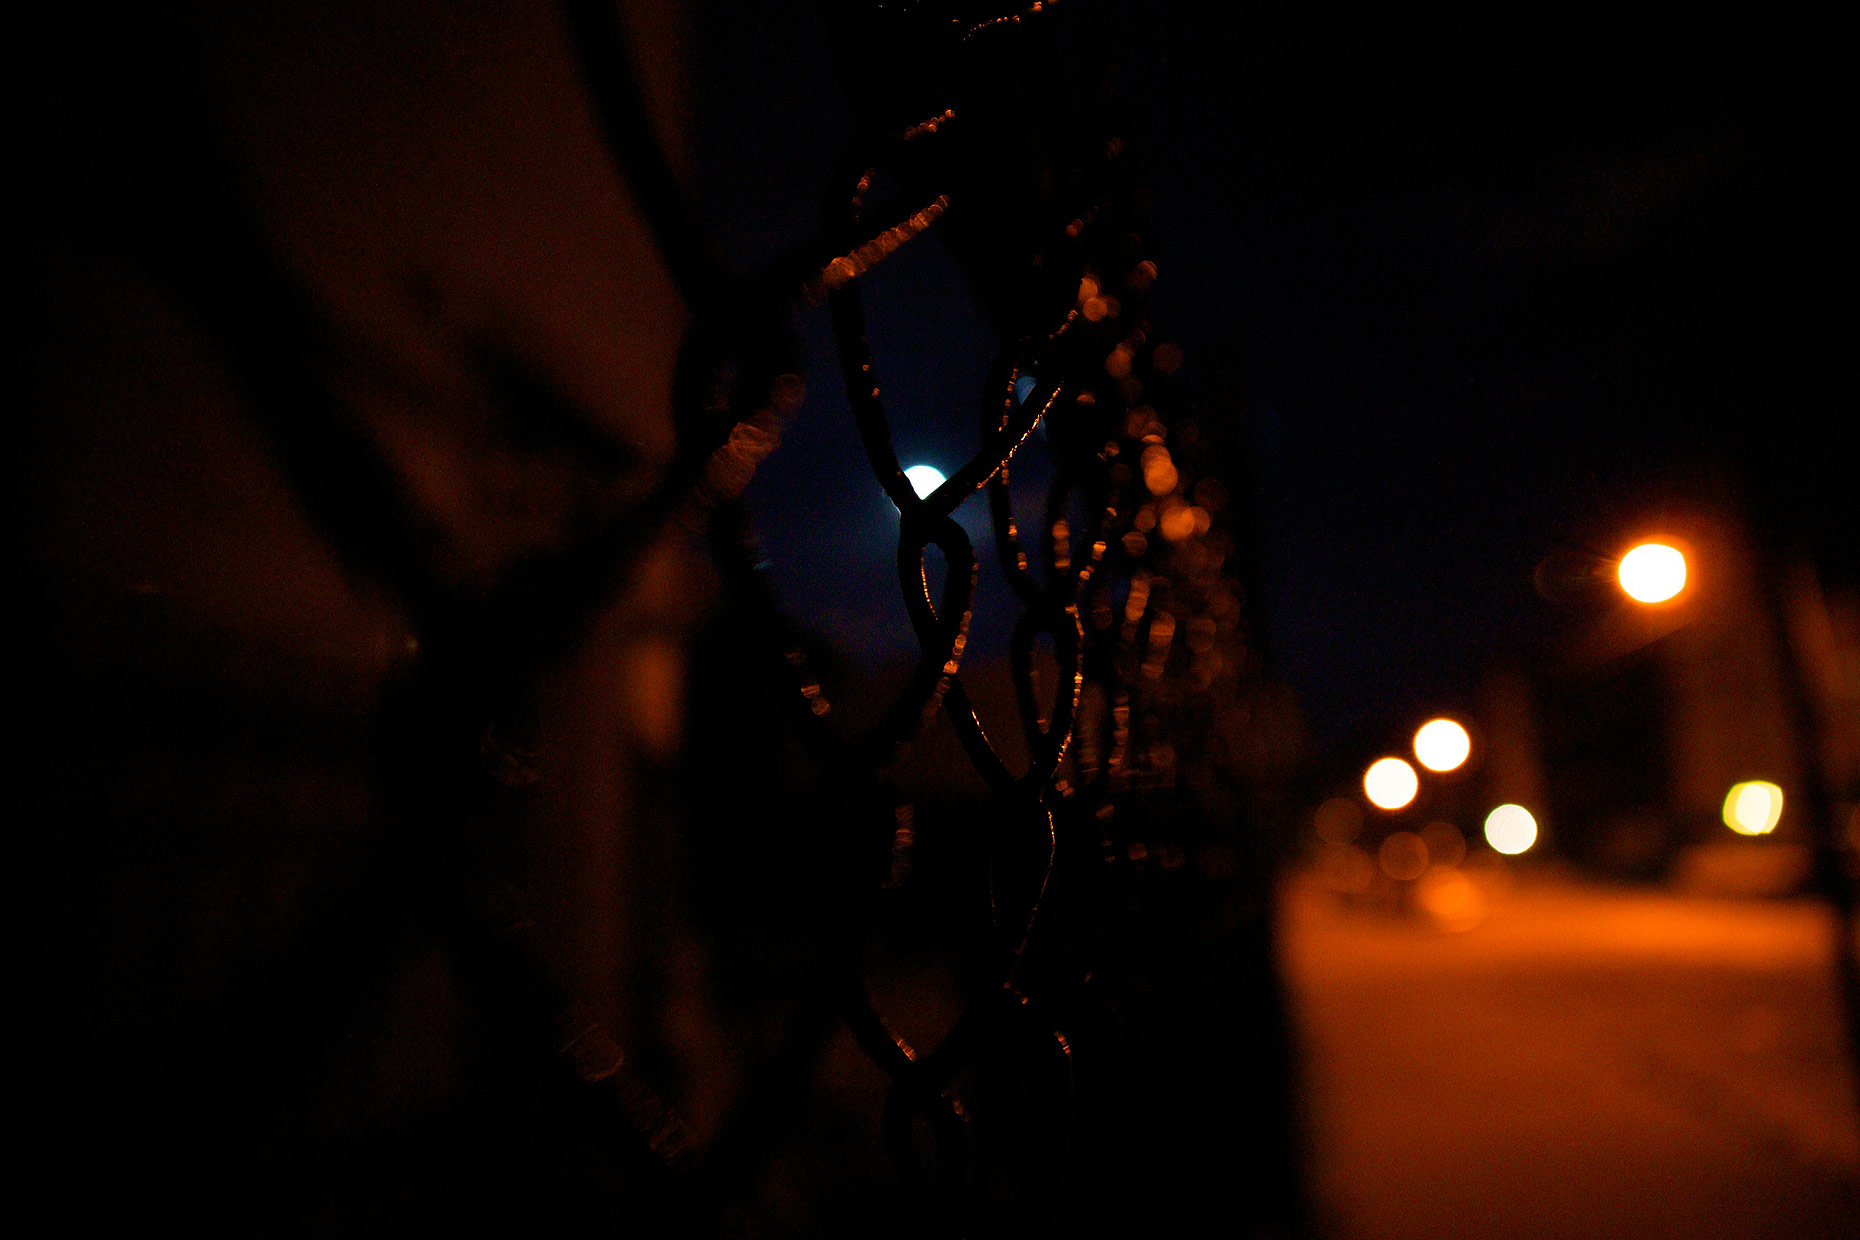 fence-at-night.jpg